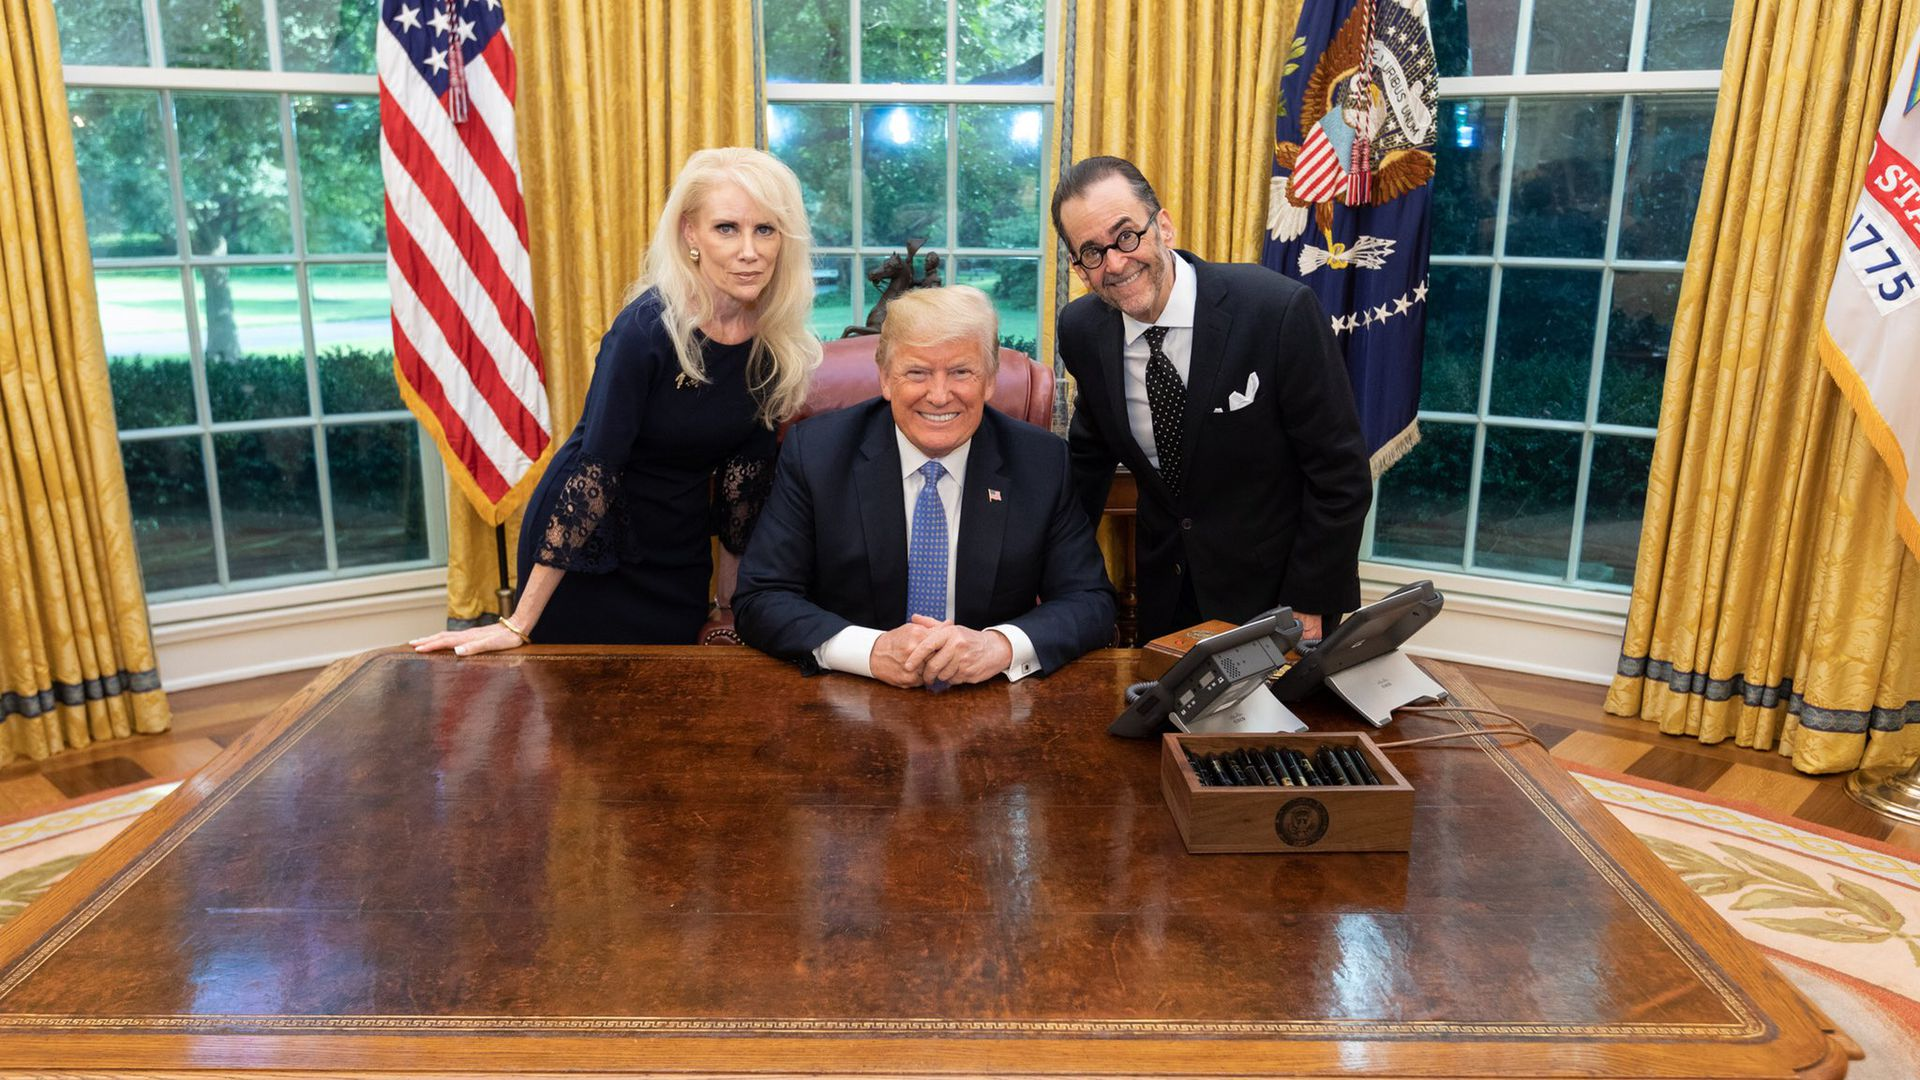 How a qanon conspiracy theorist visited trump in the oval office axios